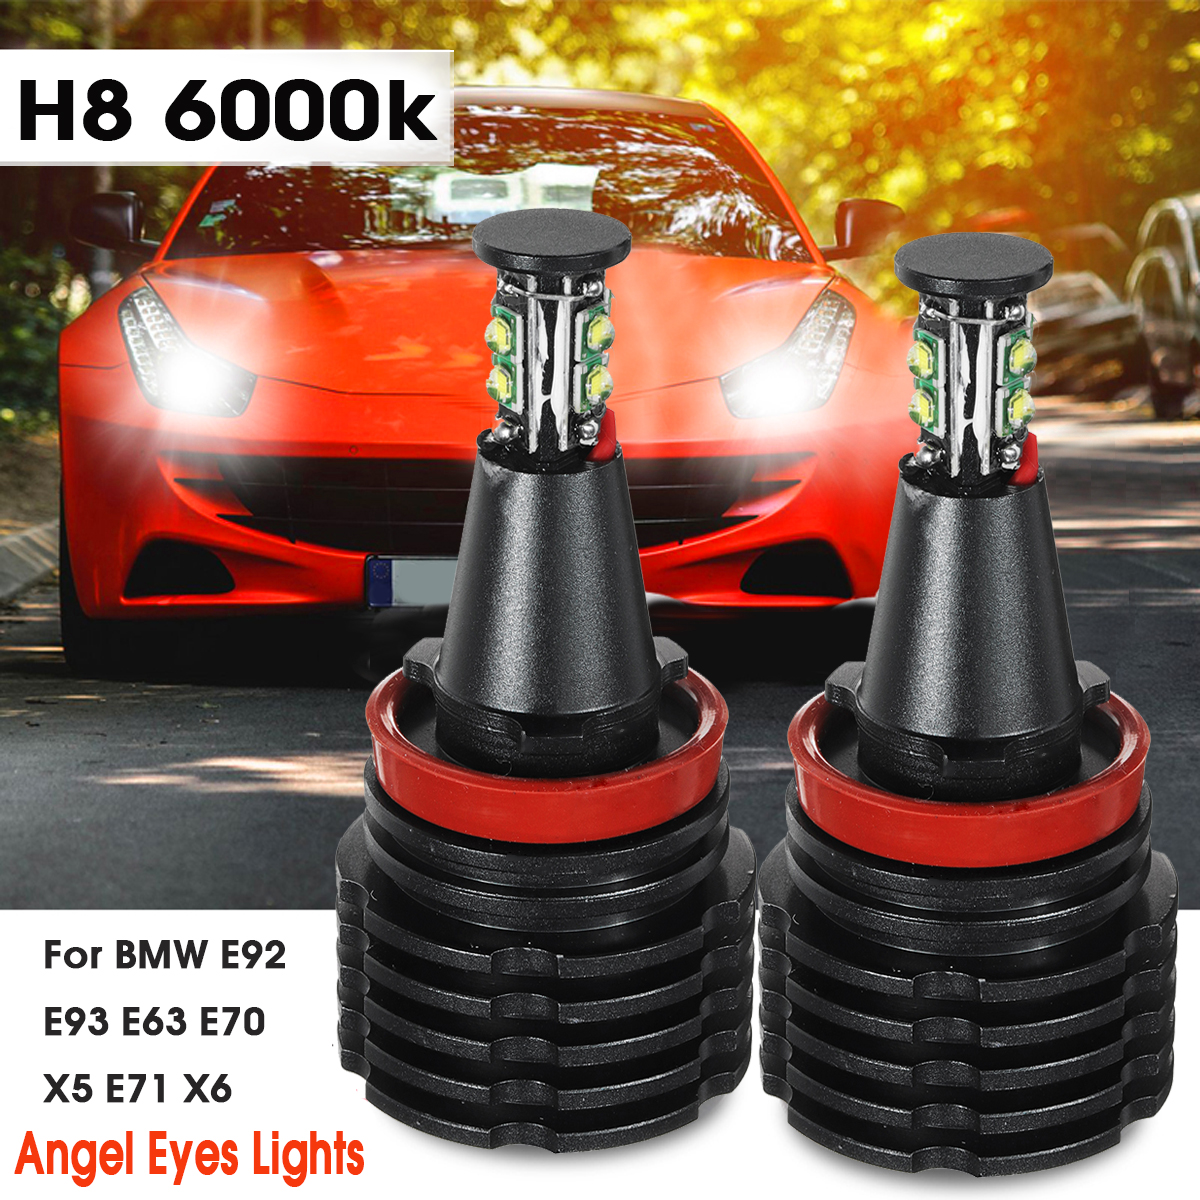 80W H8 LED Angel Eyes Lights Halo Fog Bulbs CANBUS Error Free White for BMW E92 E93 E63 E70 X5